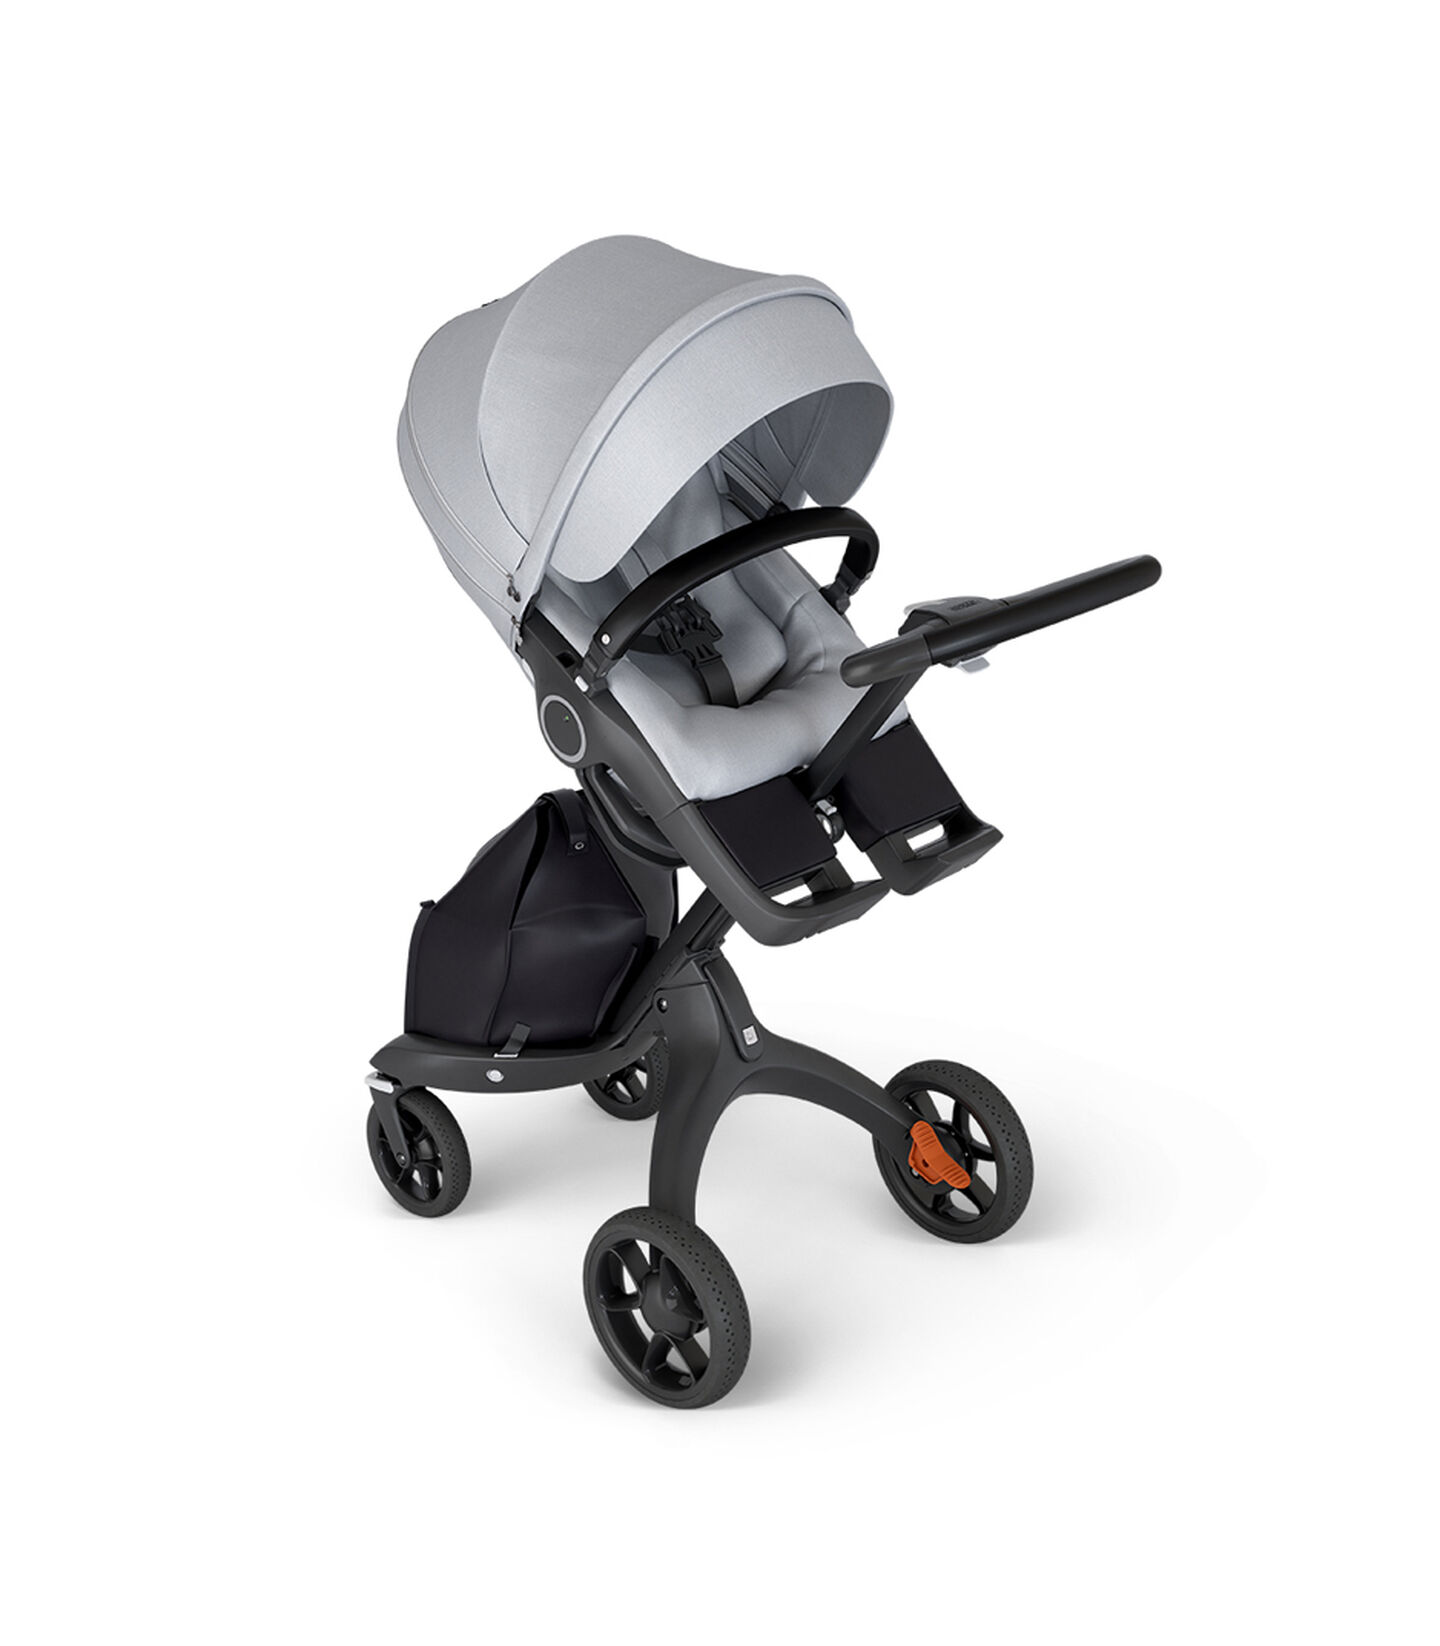 Stokke® Xplory® with Black Chassis and Leatherette Black handle. Stokke® Stroller Seat Grey Melange in angled view.